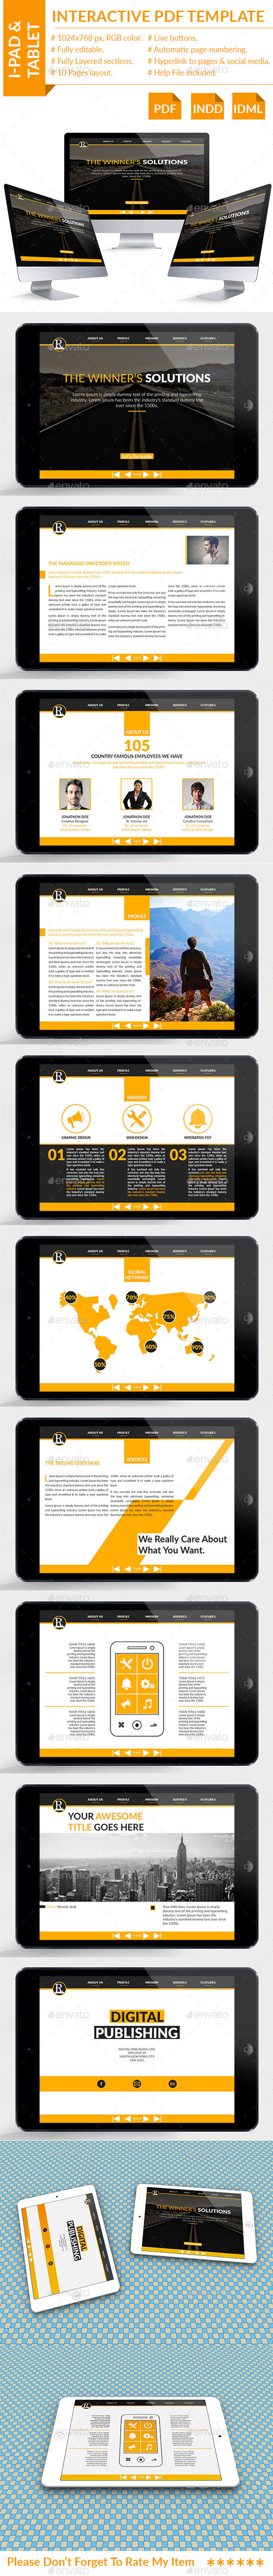 interactive pdf template by newishit graphicriver